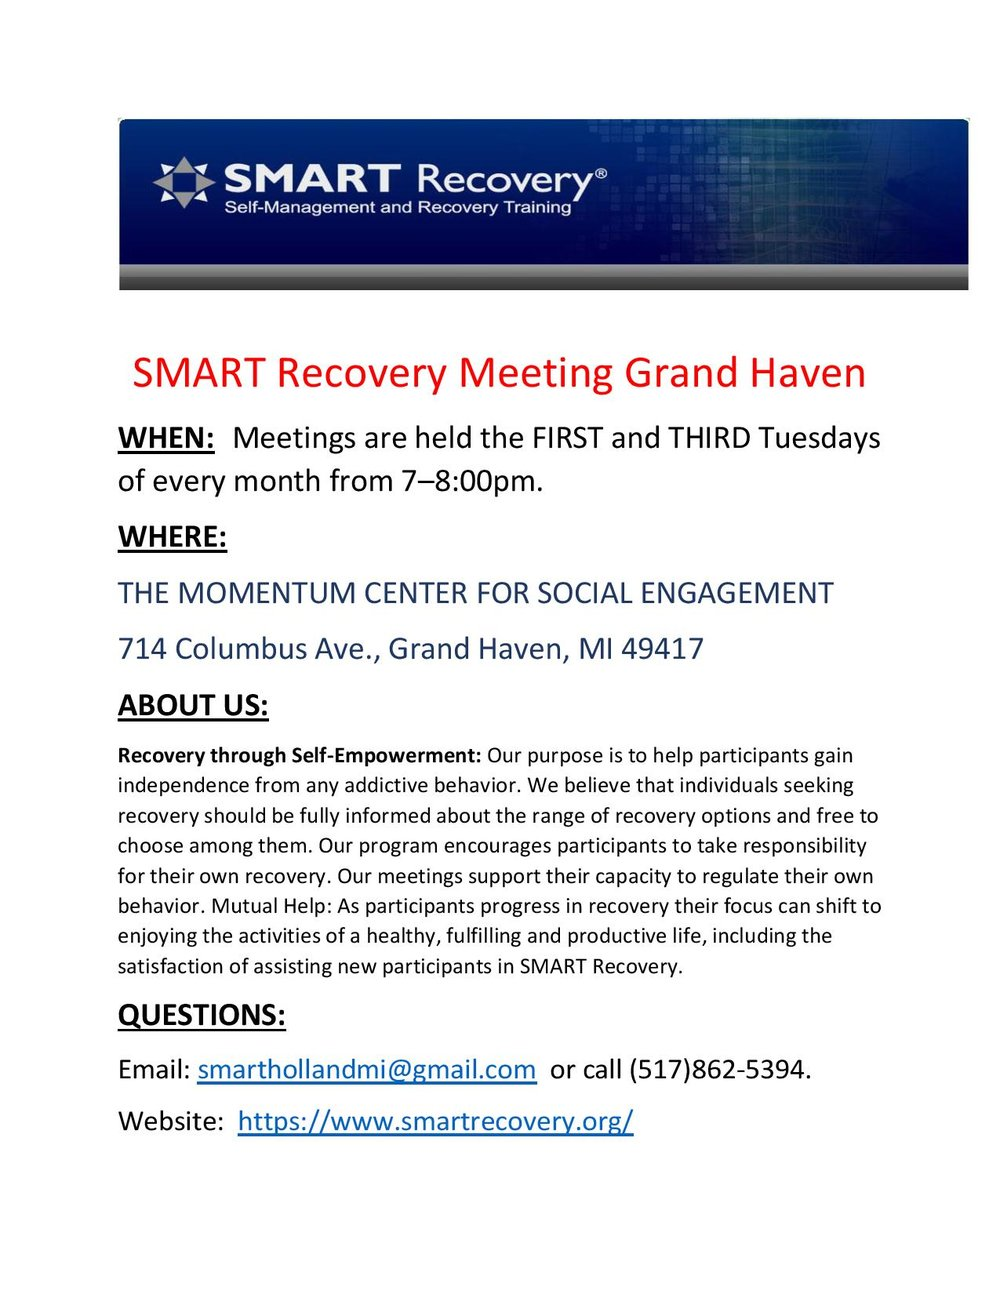 SMART Recovery Meeting Grand Haven Flyer (5)-page-001.jpg